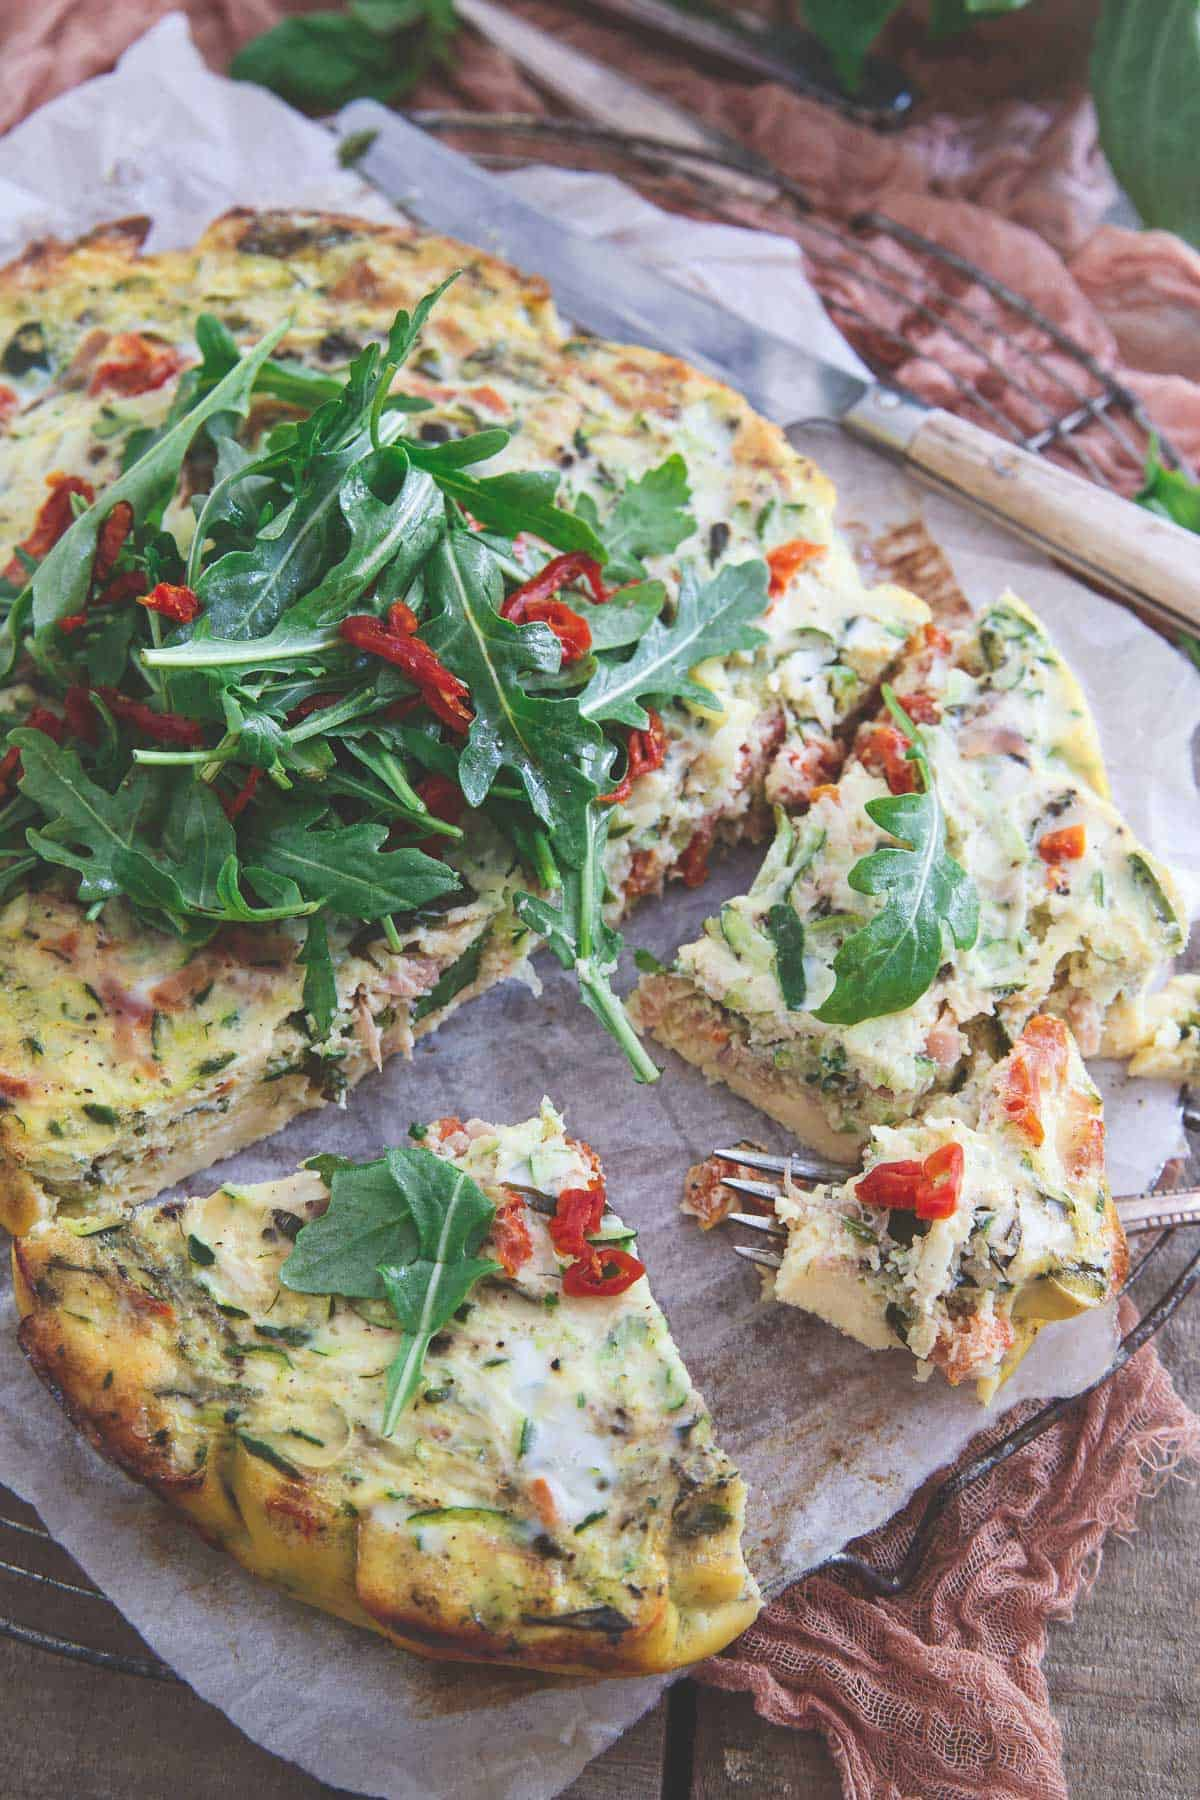 Keep the oven off with this Summer Slow Cooker Frittata bursting with zucchini, tomatoes, basil and prosciutto.